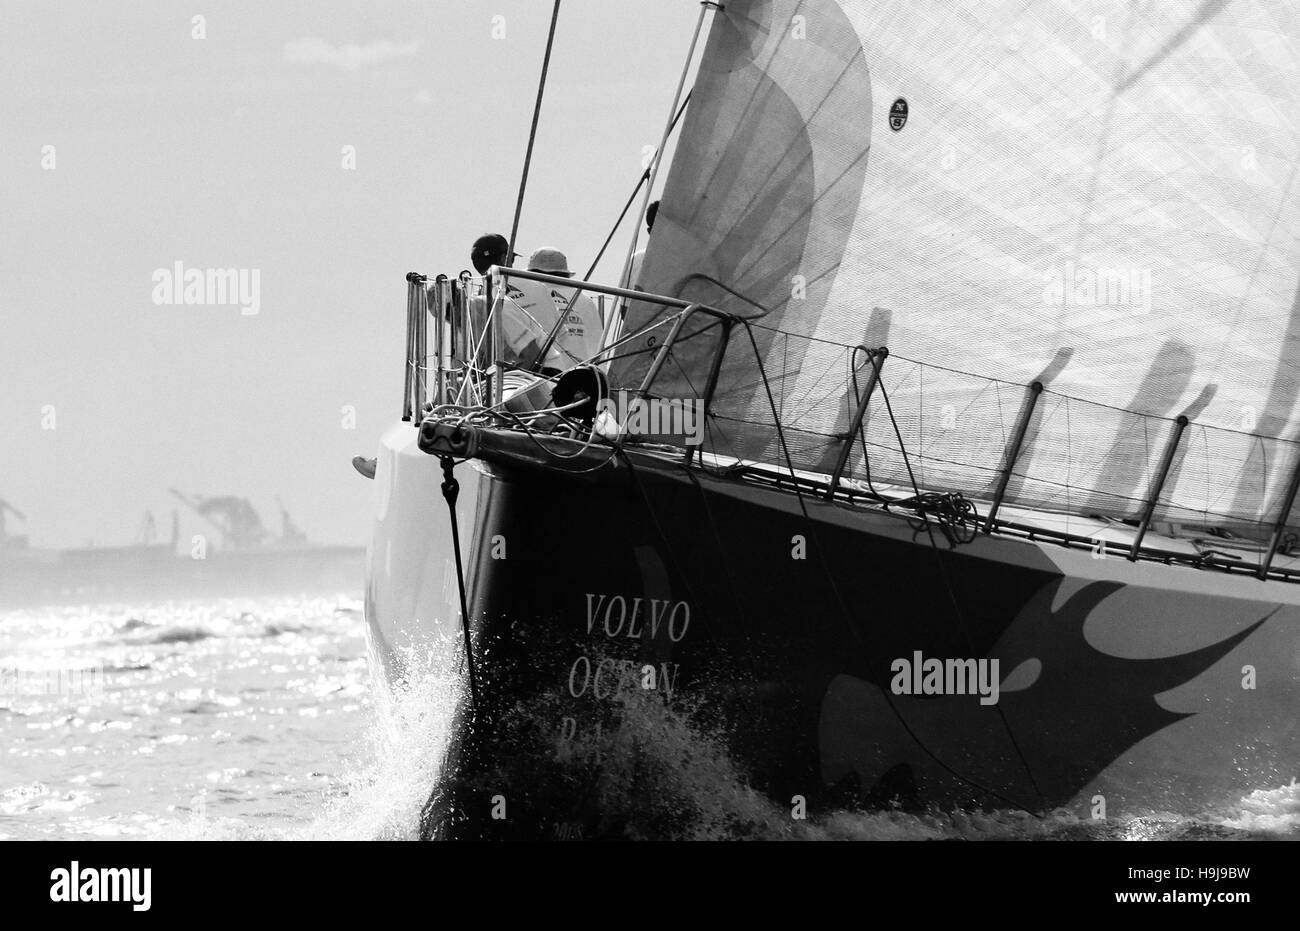 Bow of Volvo Ocean Race 70 foot sailing yacht slashing the water - Stock Image